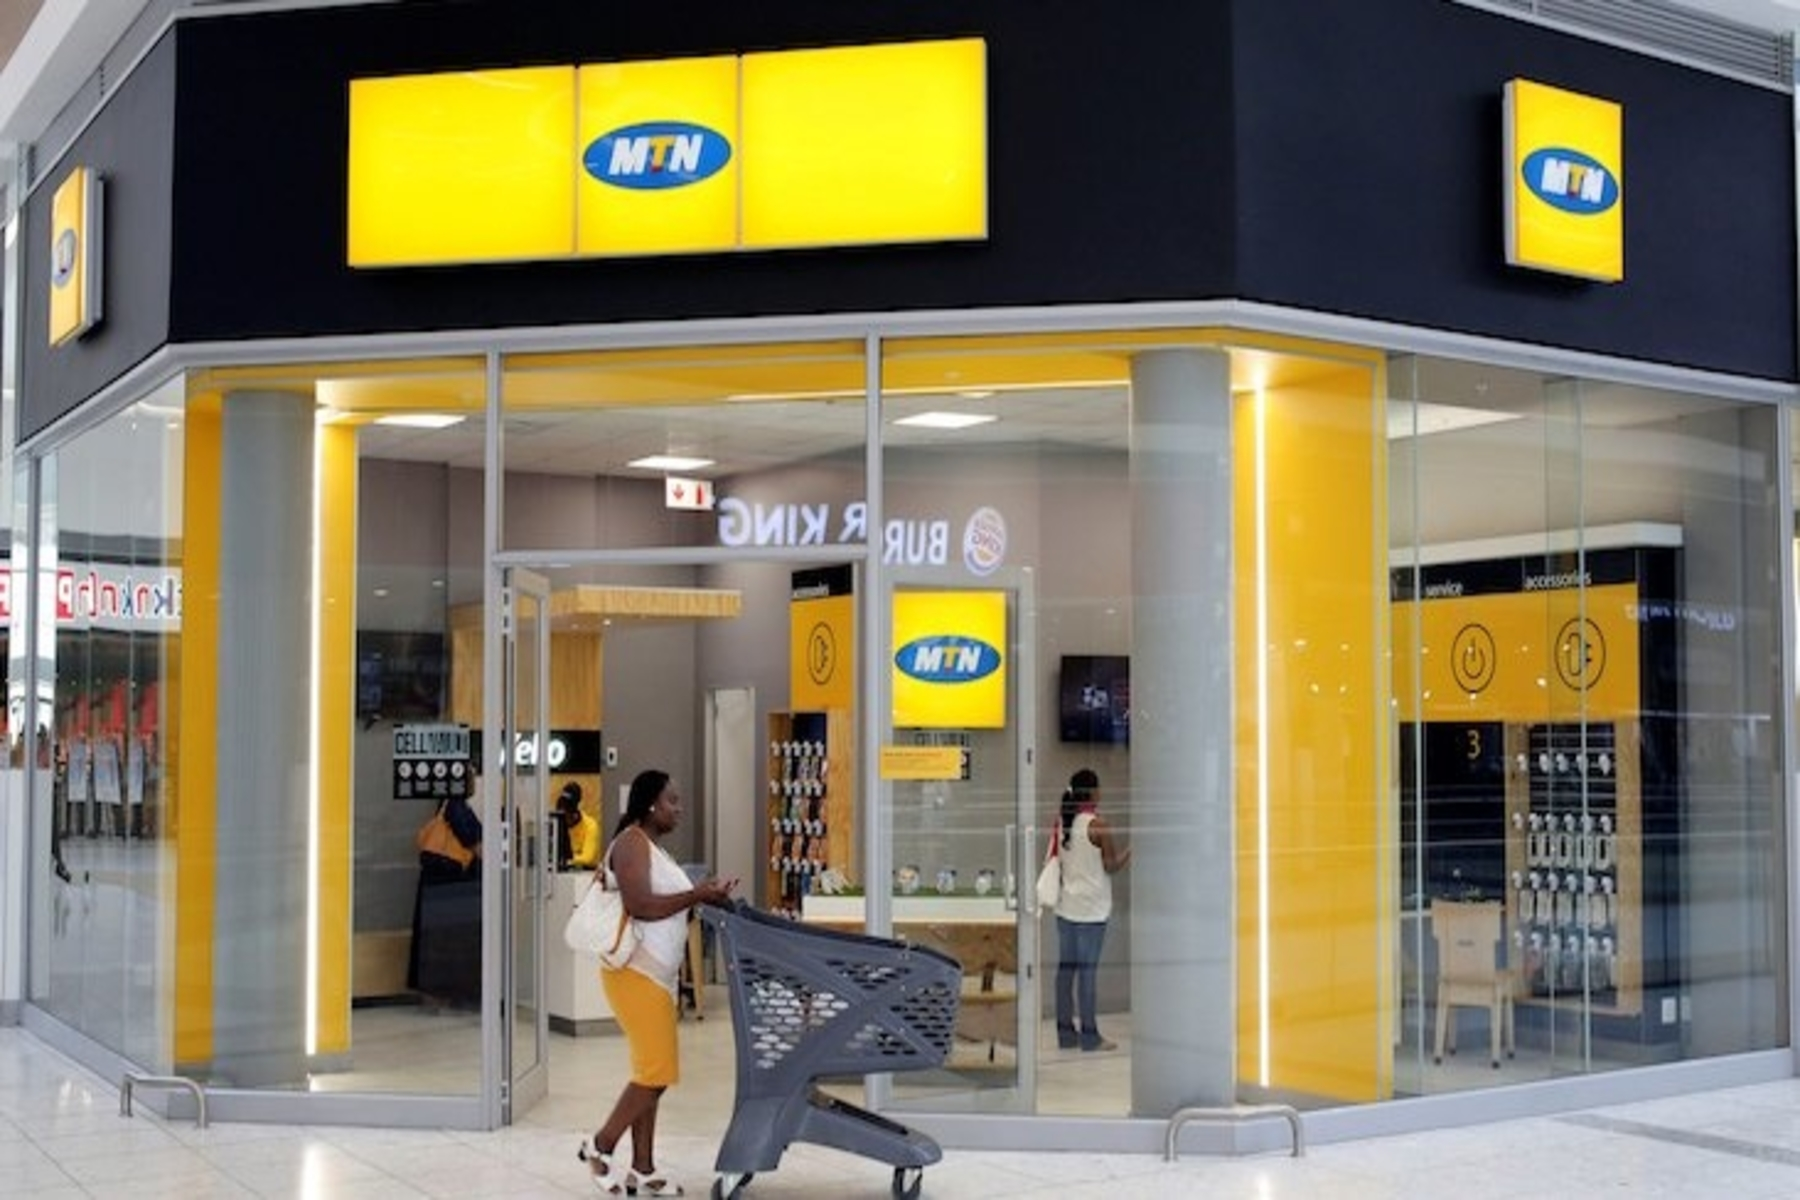 BENEFITS AND HOW TO MIGRATE BETWEEN MTN PULSE, TRU TALK AND MPULSE